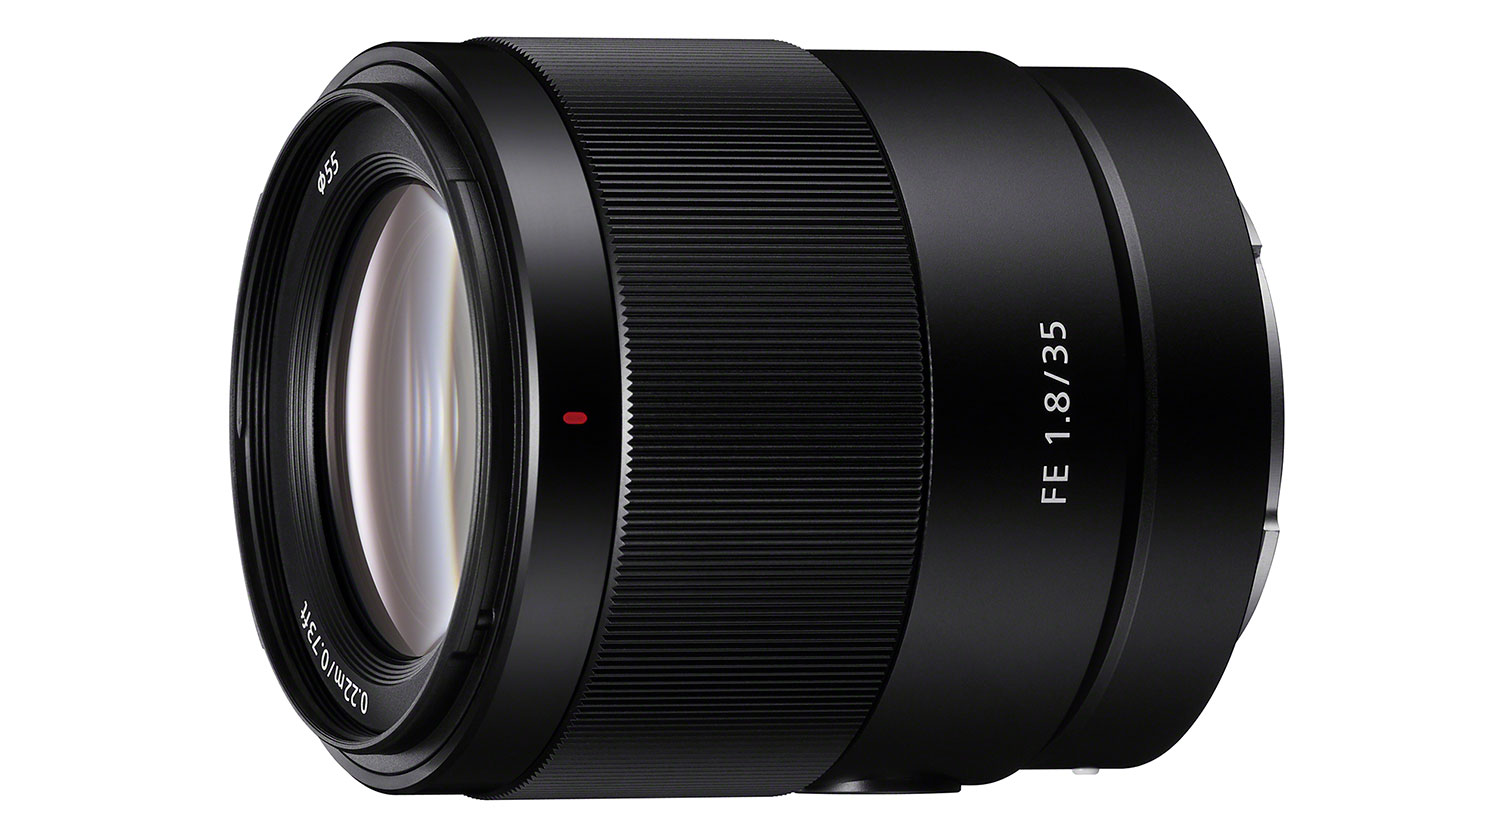 JUST ANNOUNCED: Sony FE 35mm F1.8